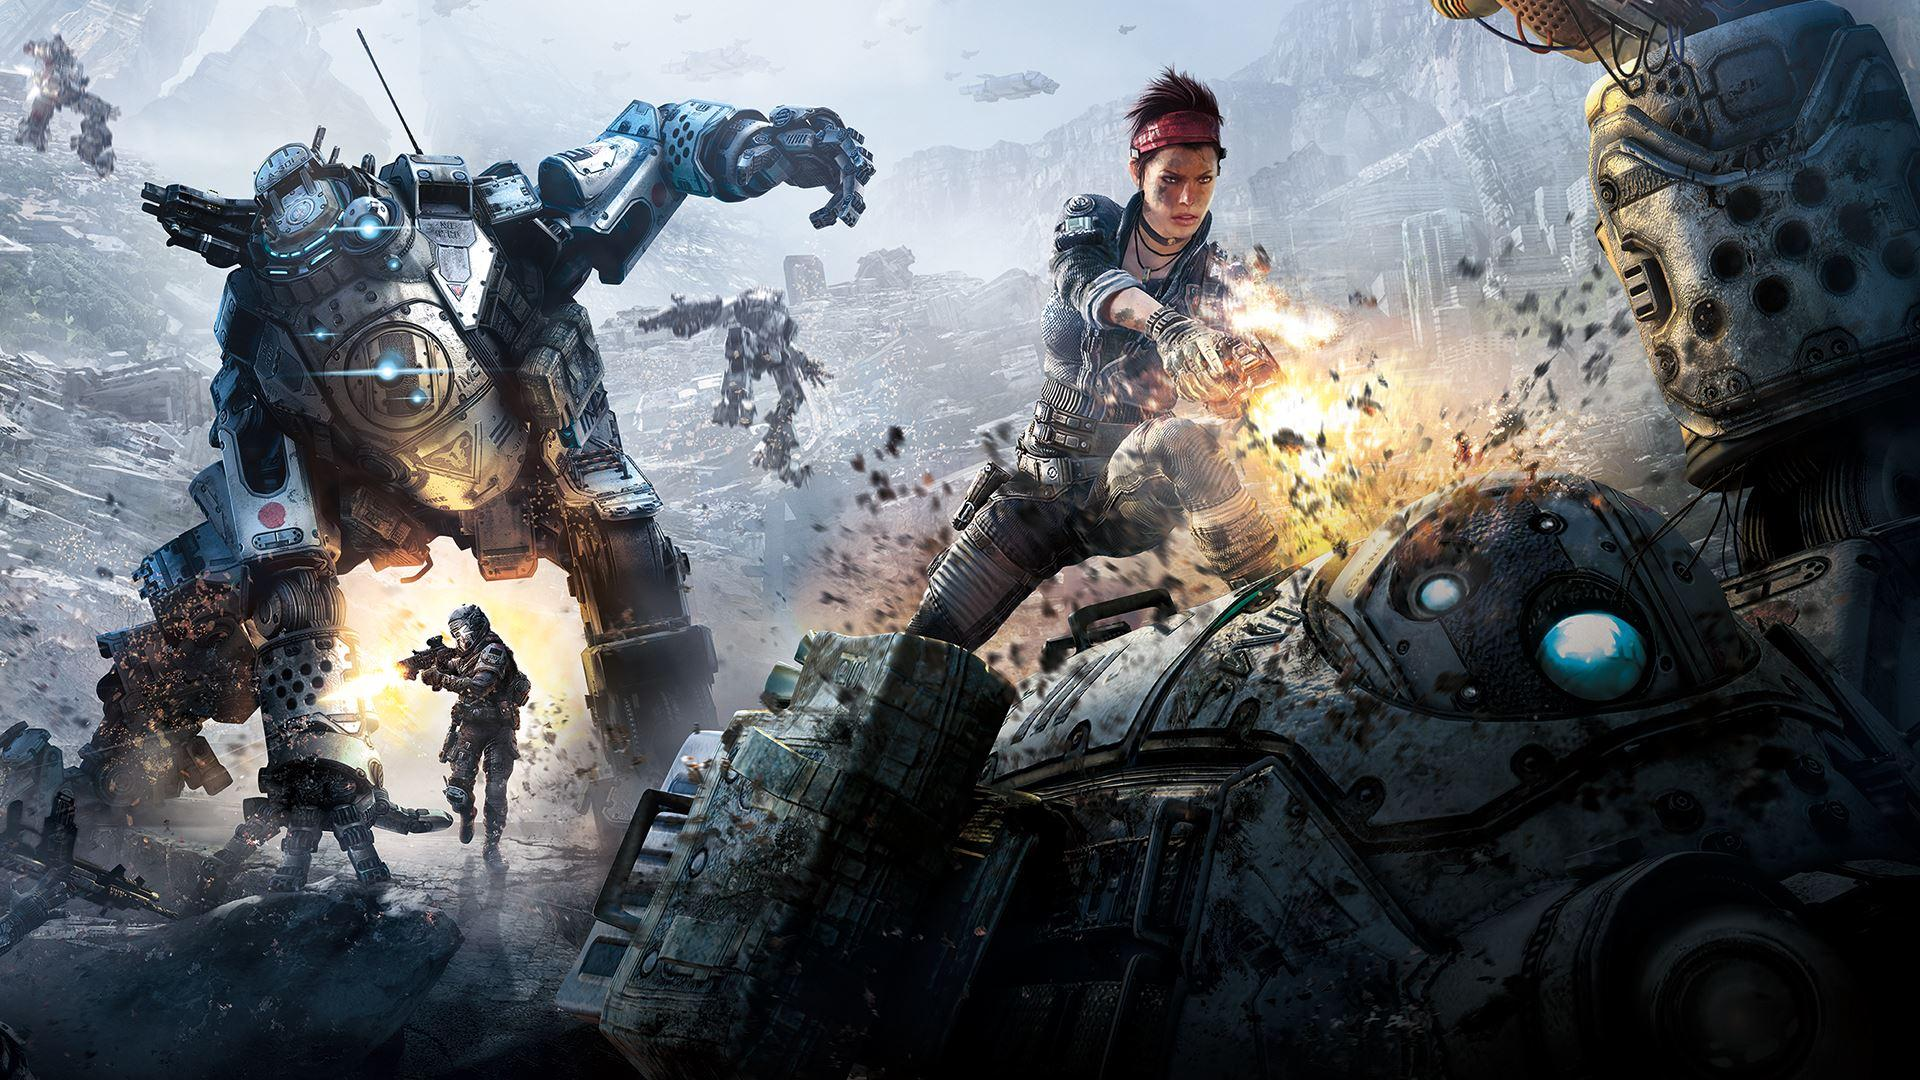 titanfall 2 release date price gameplay trailers xbox one ps4 pc